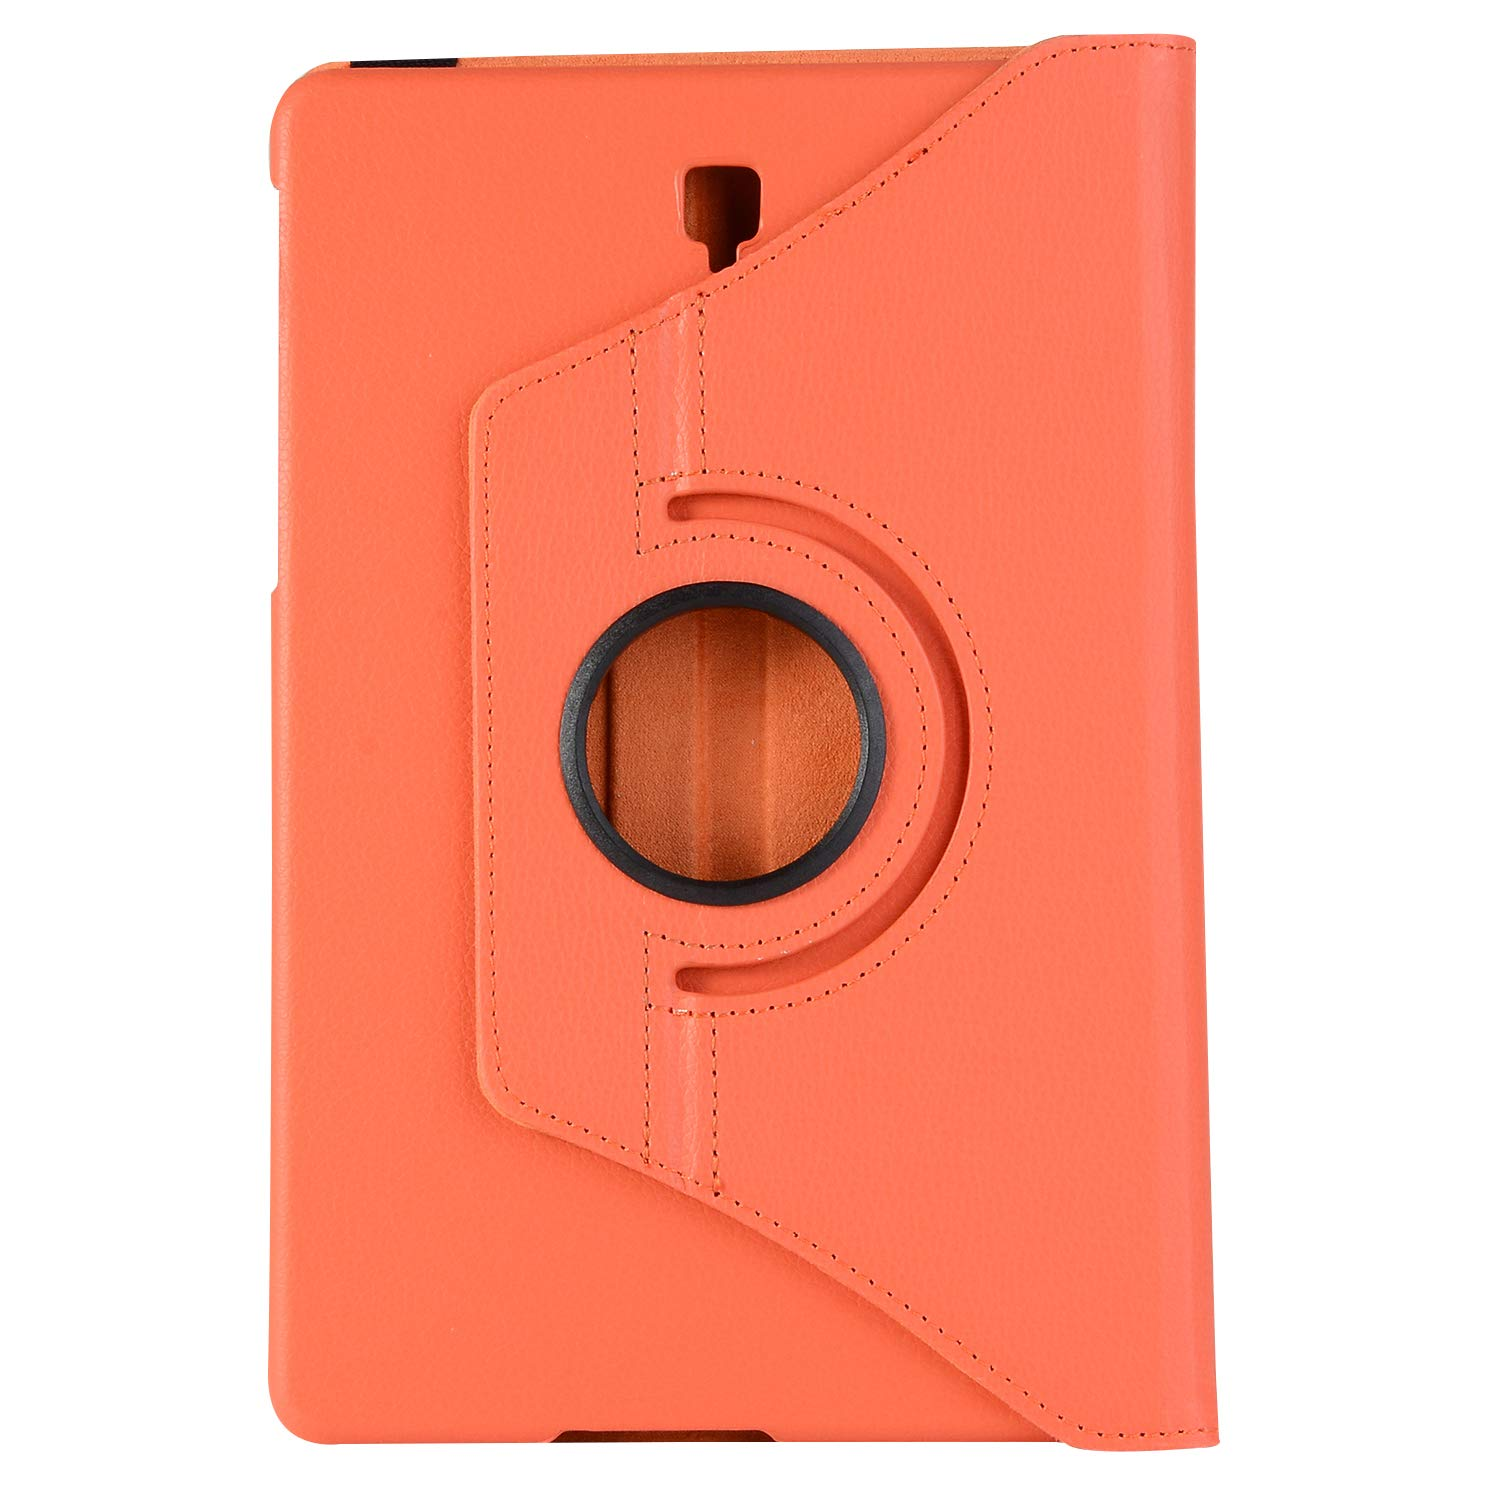 Galaxy Tab S4 10.5 Case, Lightweight Smart Case 360 Rotating Case with Shockproof Soft and Auto Sleep/Wake Function for Samsung Galaxy Tab S4 10.5 Case-Orange